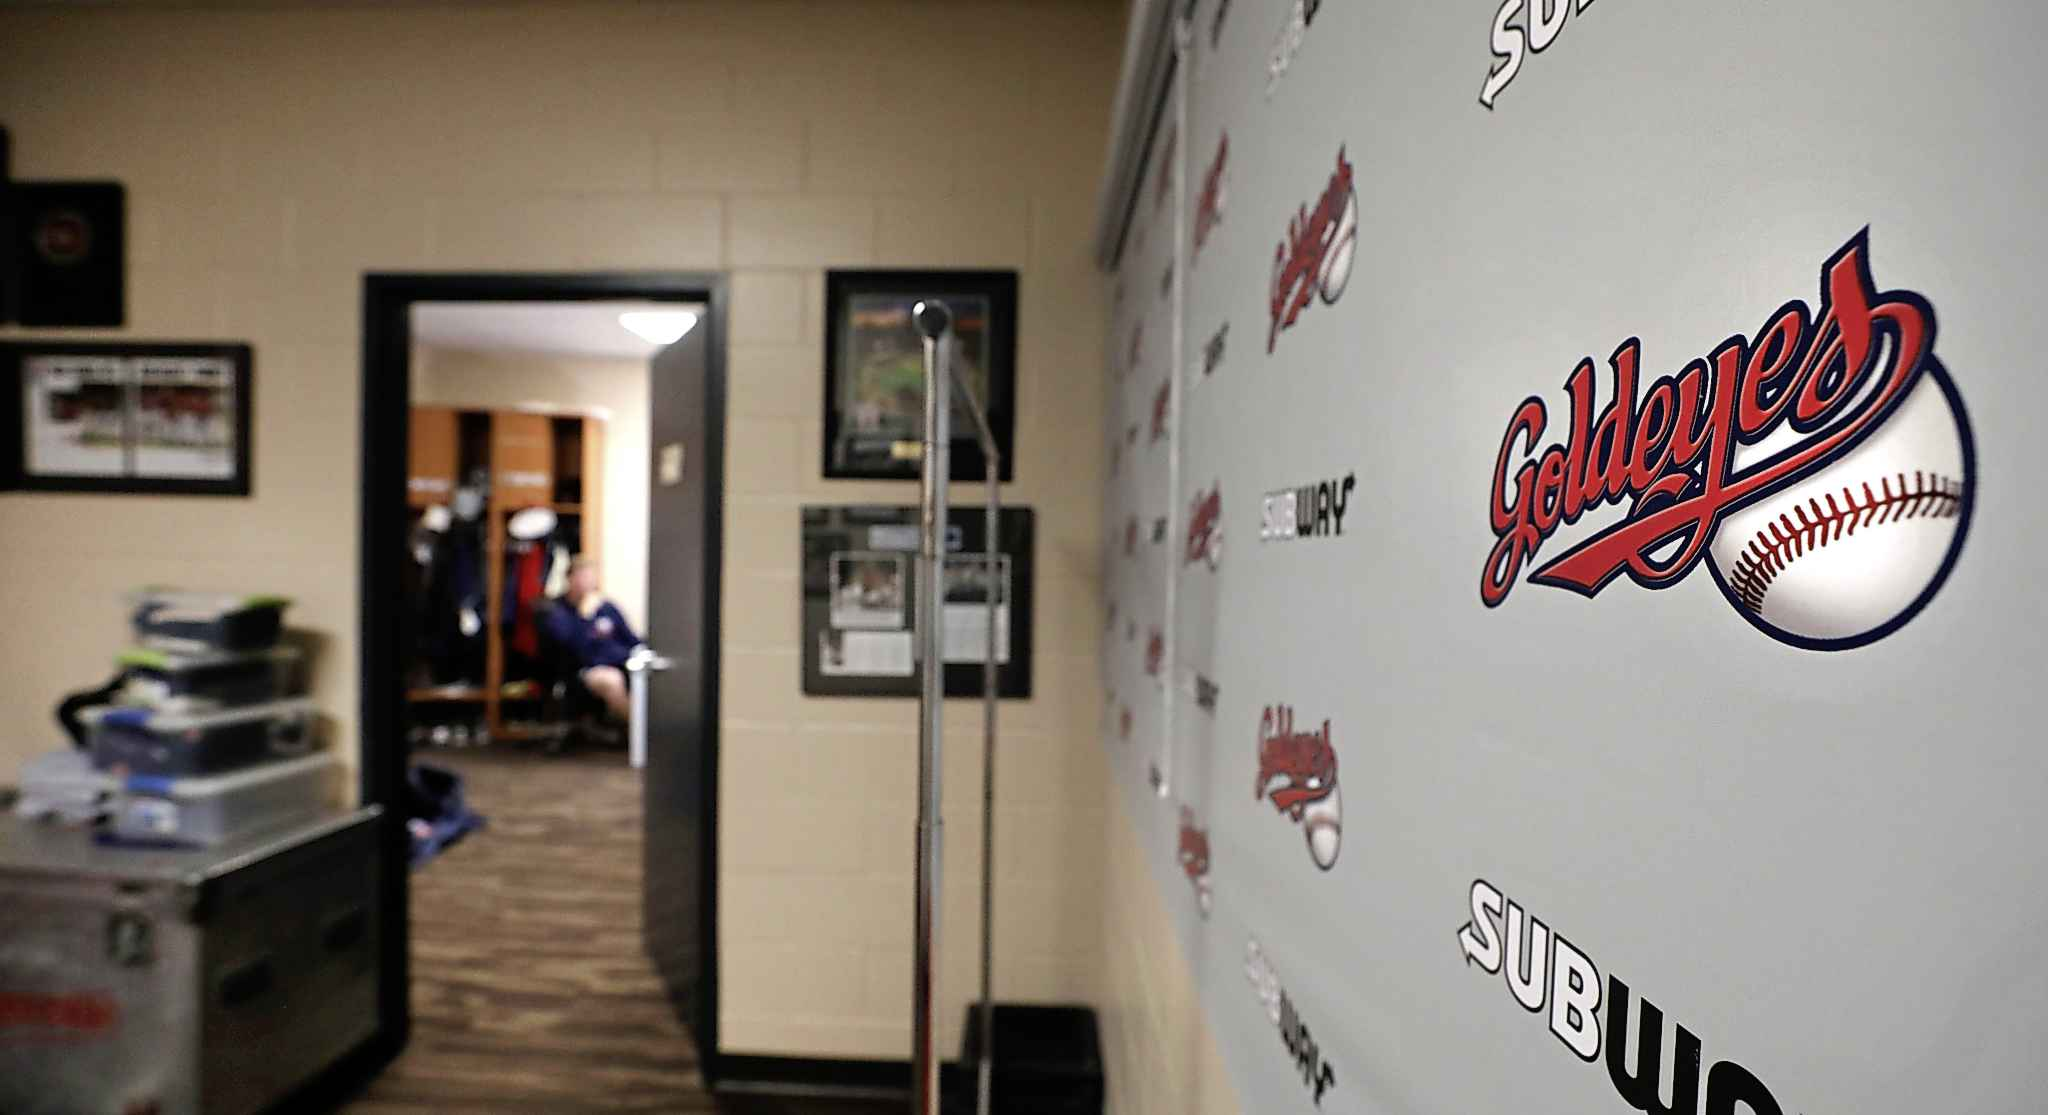 The calm before the storm: Forney's office was busy this week as the team's 27 players began filing in ahead of Saturday's start of spring training, poking their heads in for a quick handshake and hello with the boss. (Ruth Bonneville / Winnipeg Free Press)